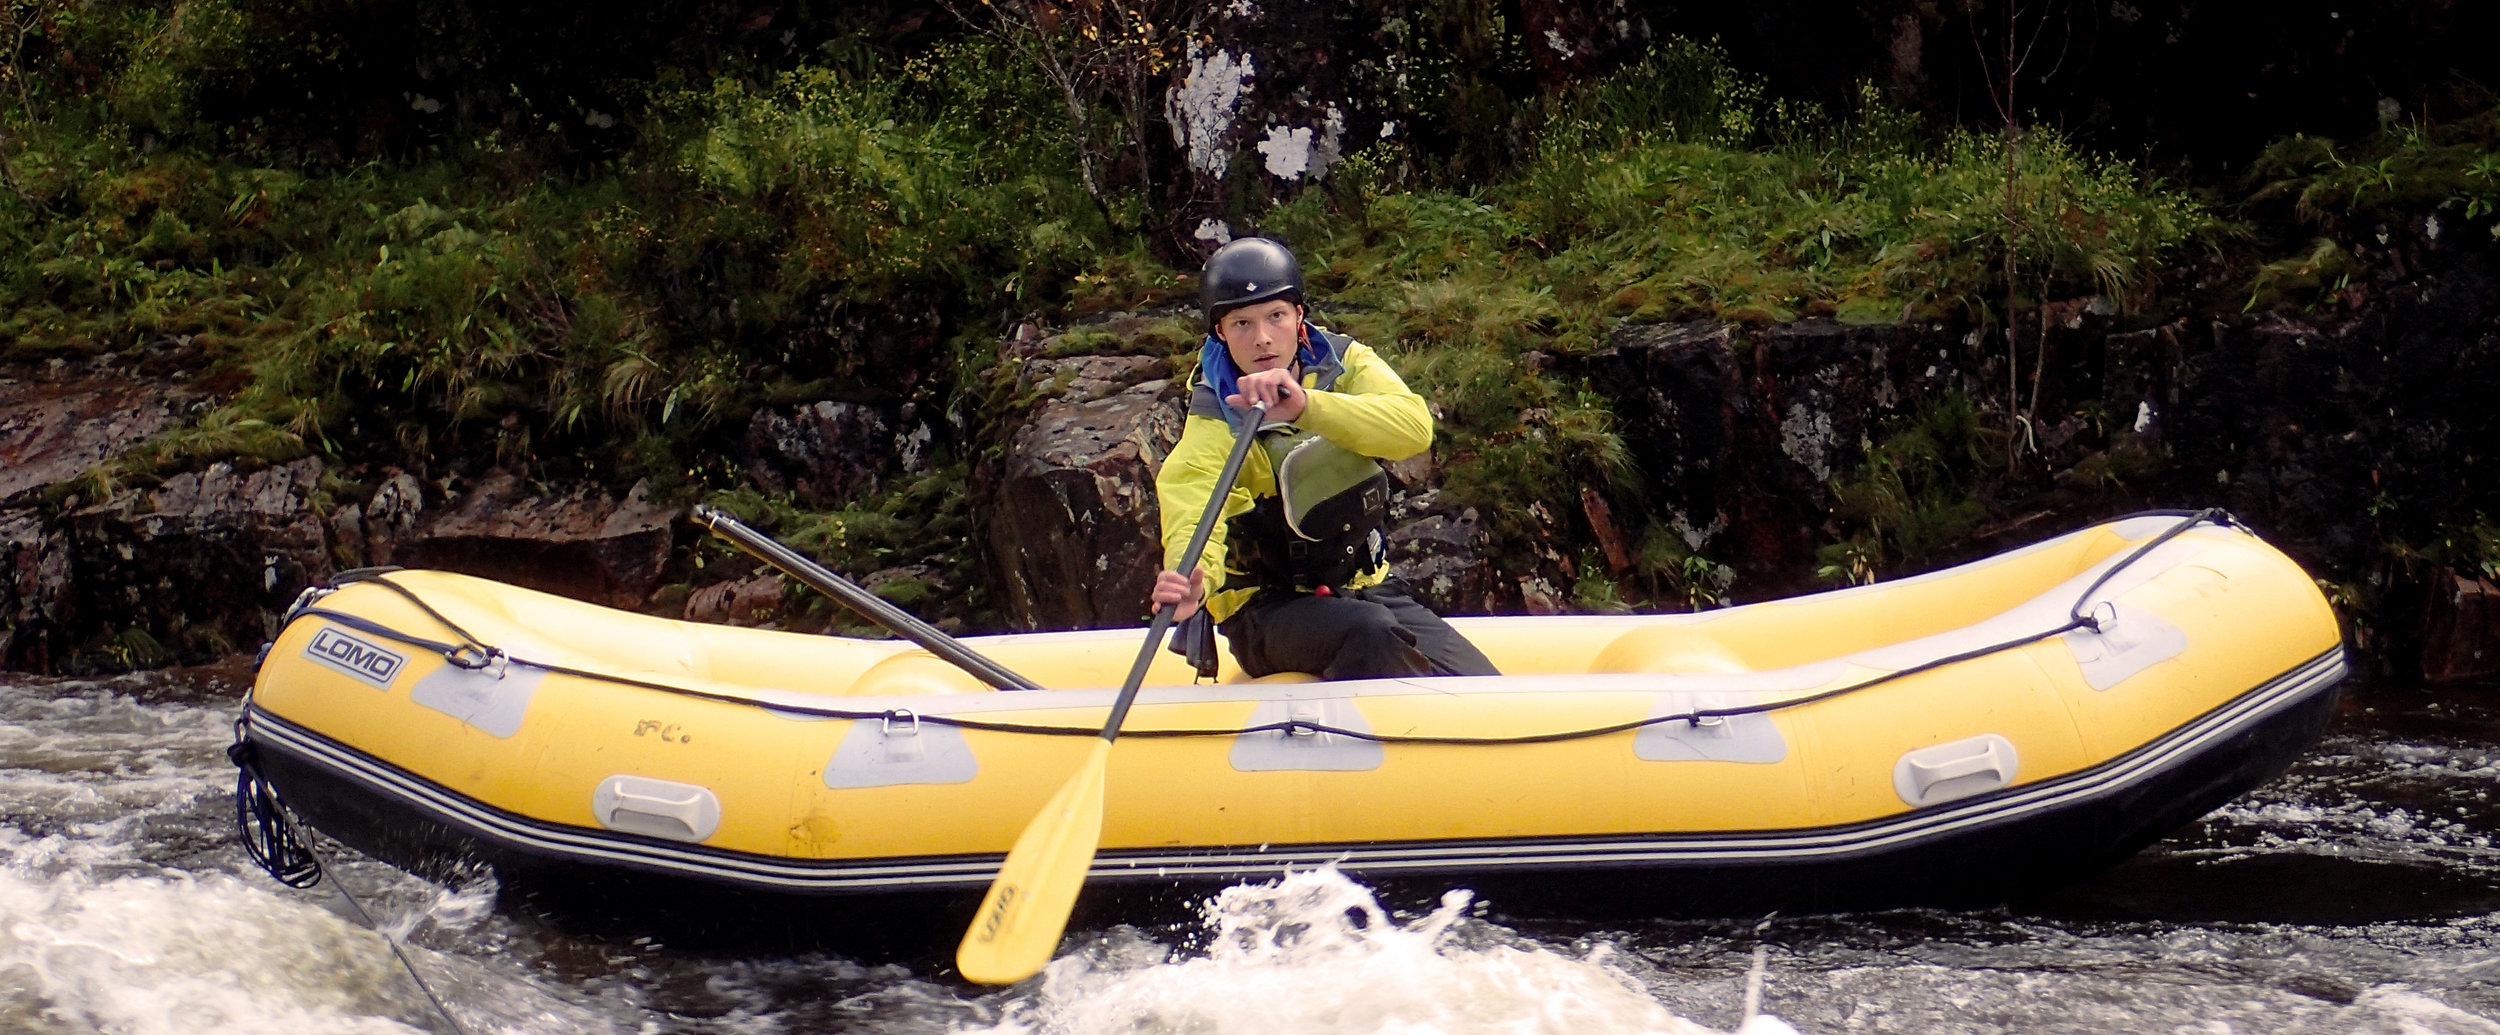 Joe Kirk Rafting Outlaw King.JPG